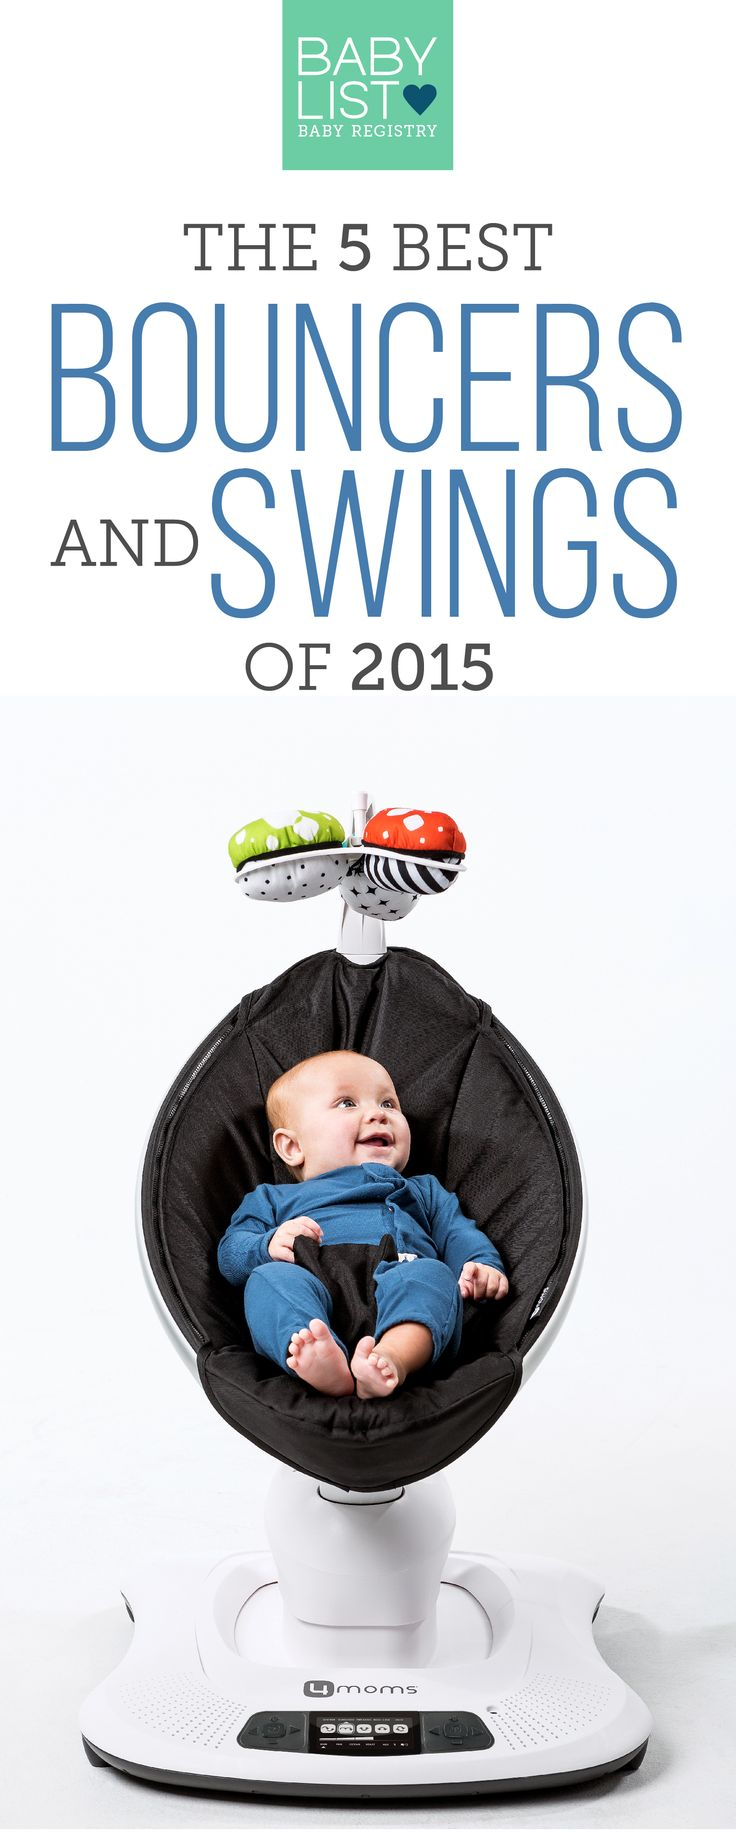 Need some advice to help you pick the best bouncer for baby? Here are the 5 best bouncers and swings of 2015 - based on our own research + input from thousands of parents. There is no one must have bouncer. Every family is different. Use this guide to help you figure out the best bouncer for your family's needs and priorities.